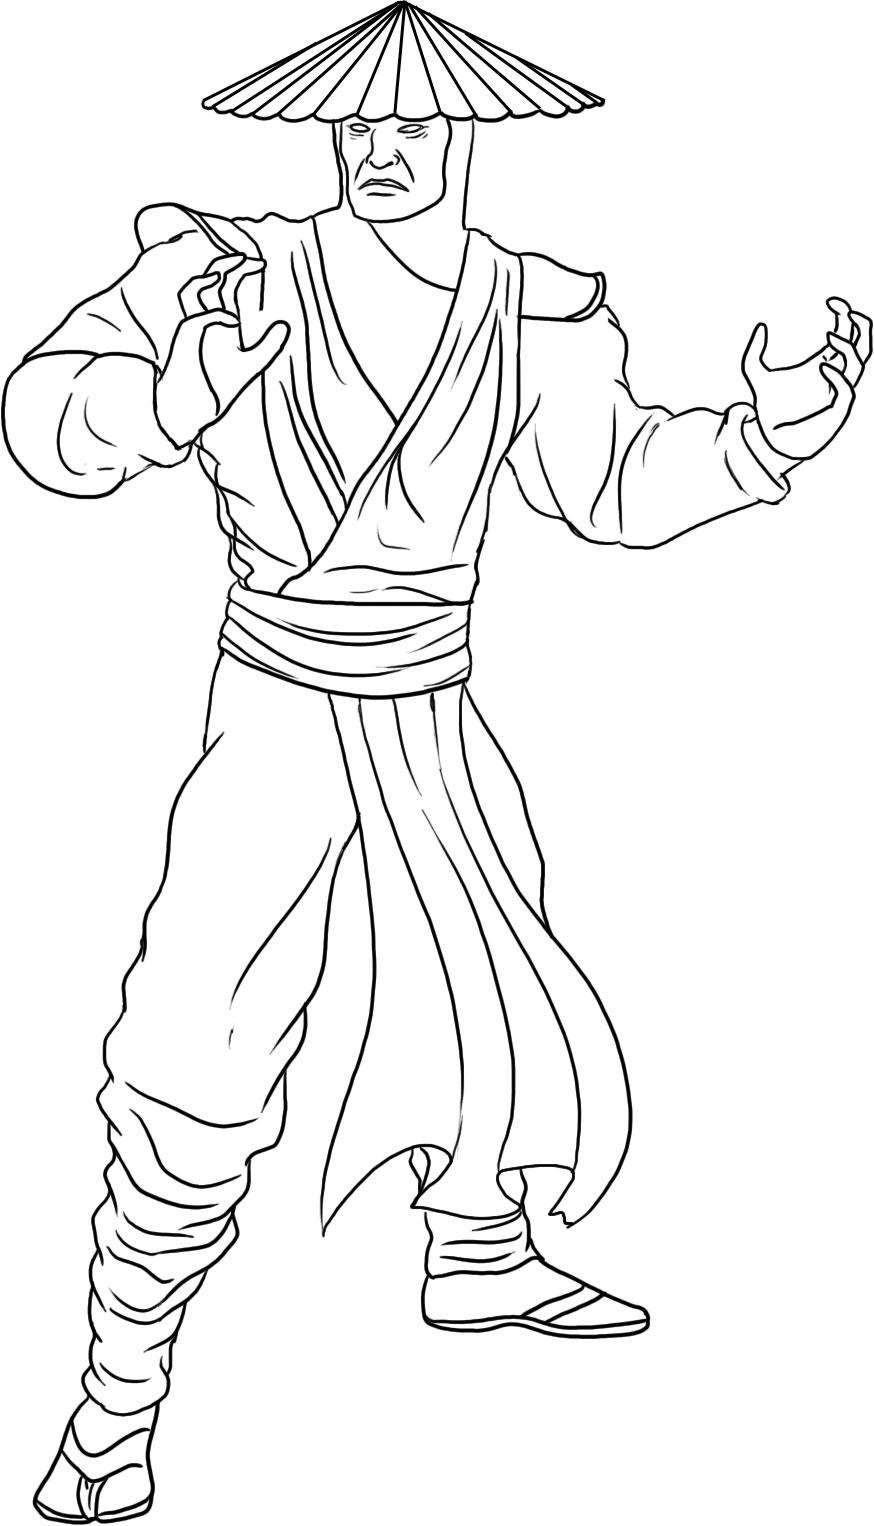 coloring pages x - free printable mortal kombat coloring pages for kids